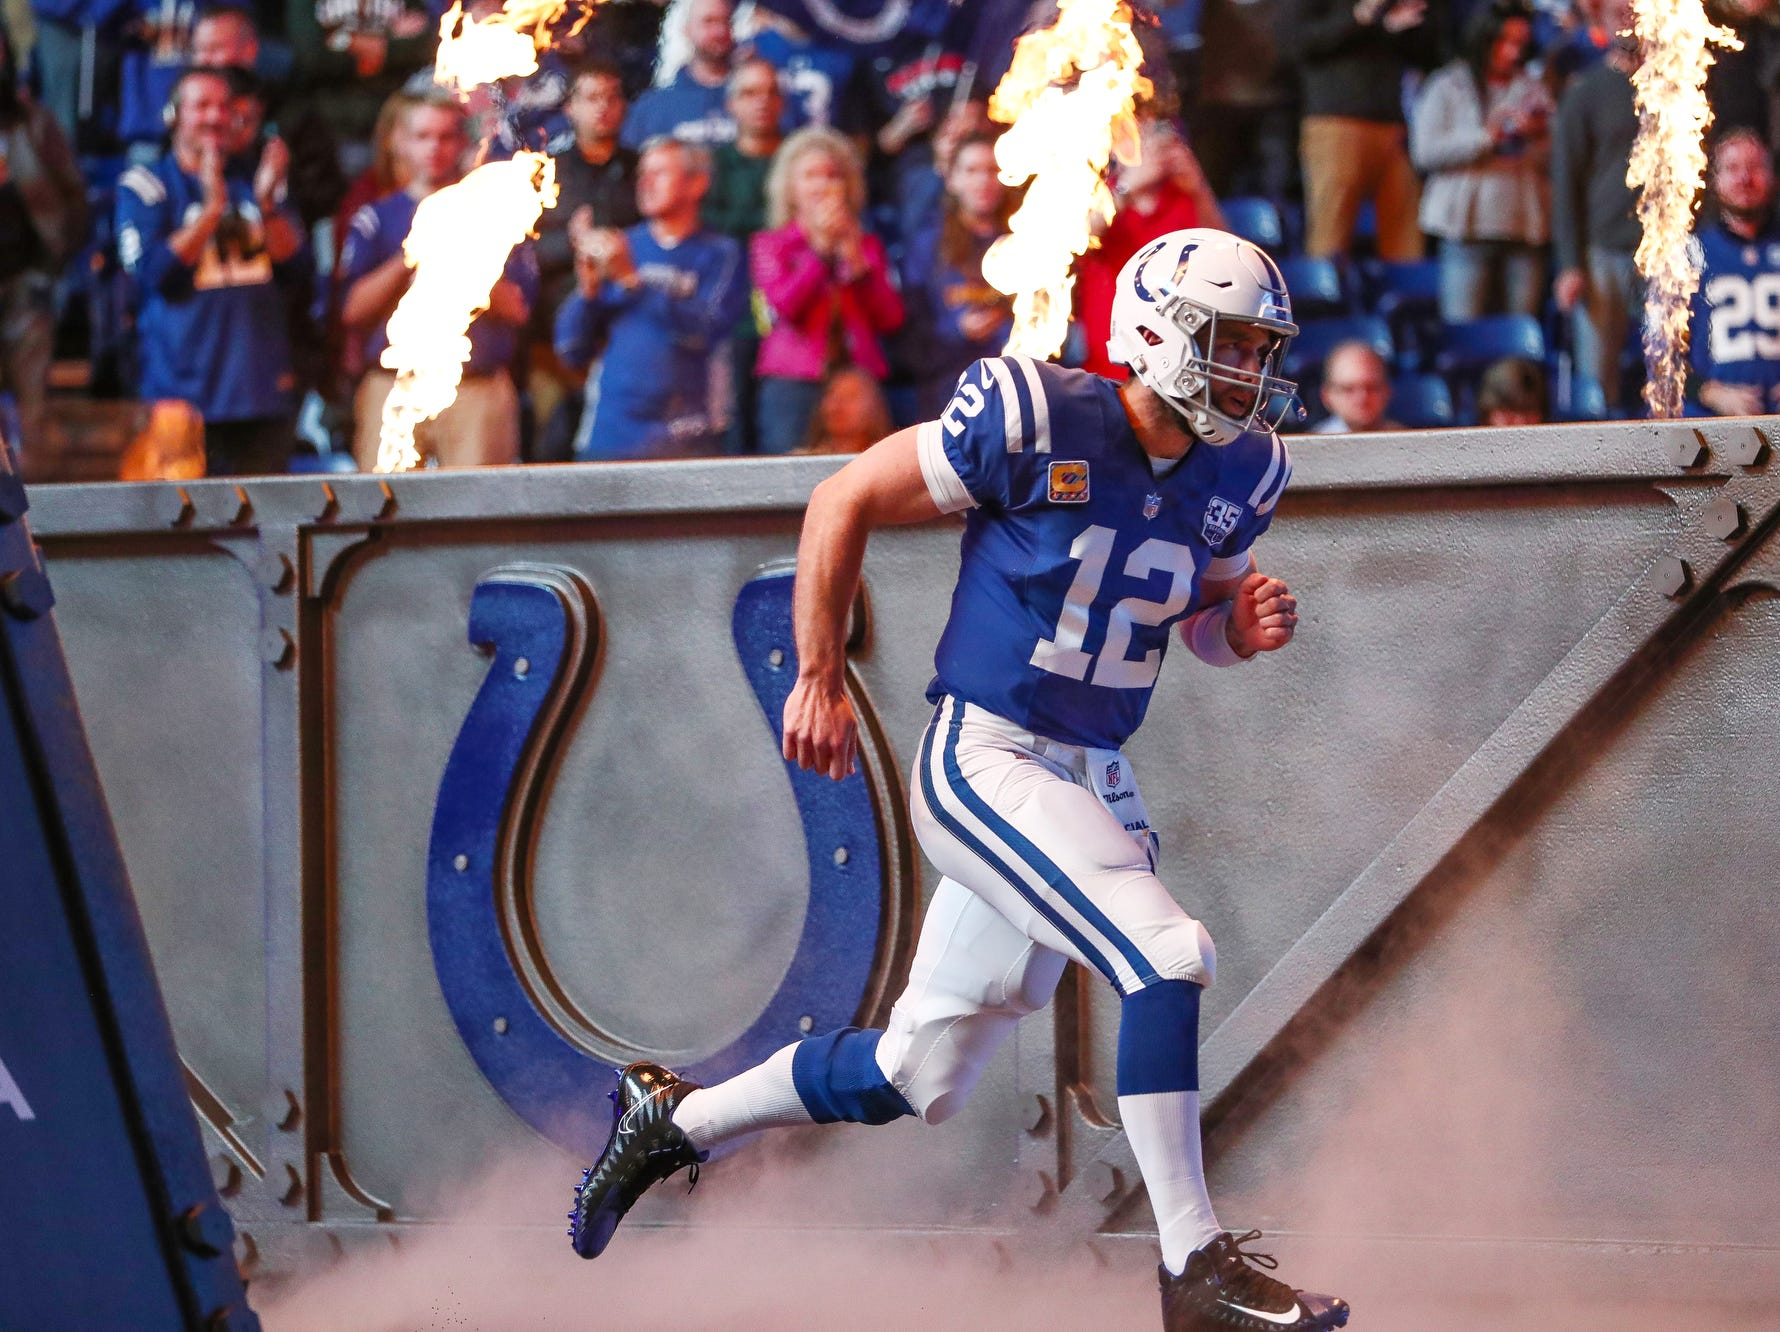 Indianapolis Colts quarterback Andrew Luck (12) makes his way onto the field before the Buffalo Bills game at Lucas Oil Stadium on Sunday, Oct. 21, 2018.